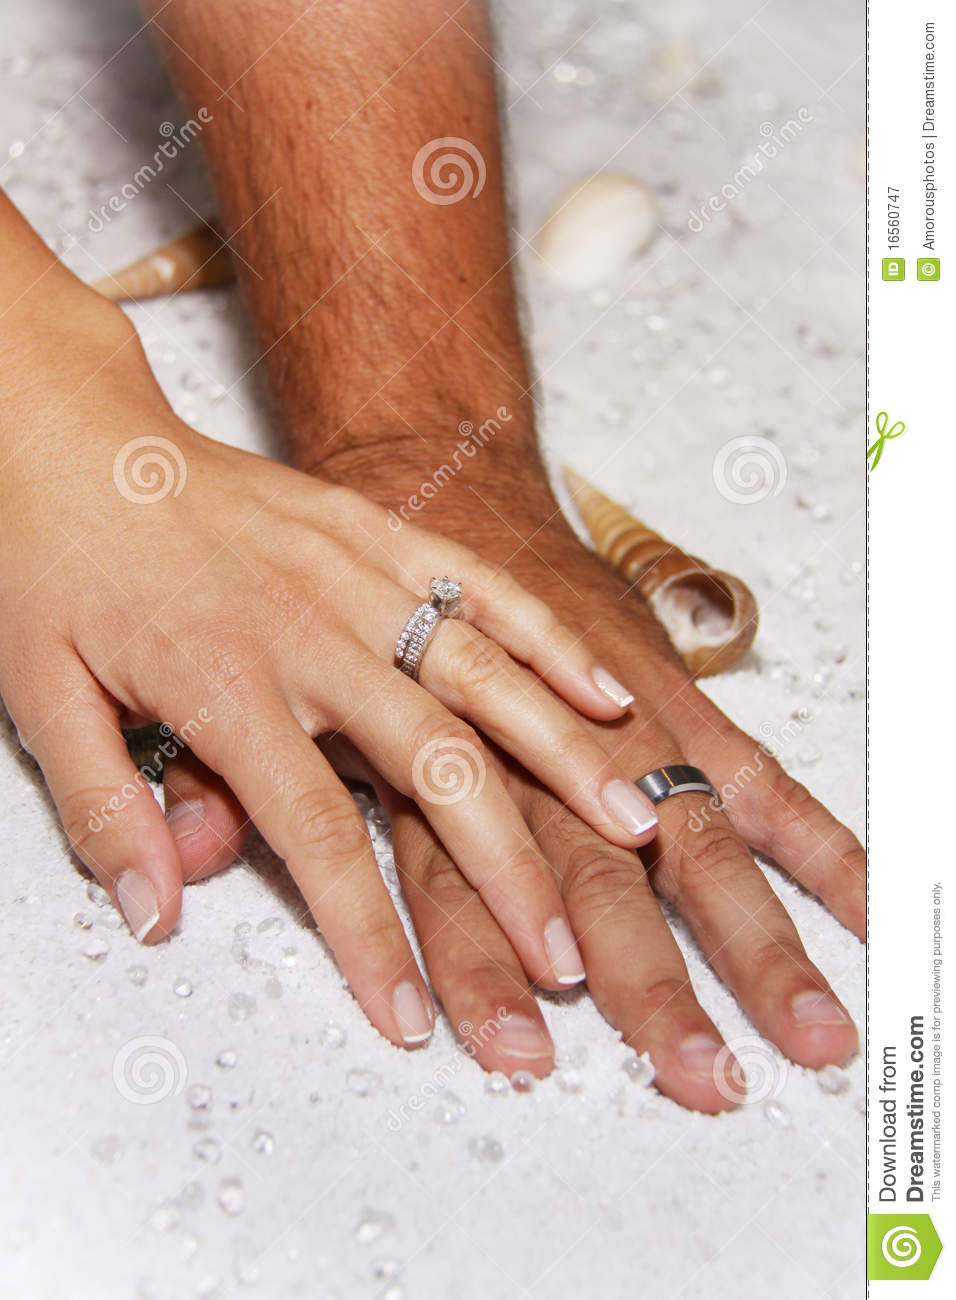 royalty free stock photography modern wedding hands white sands image modern wedding rings Modern Wedding hands in white sands